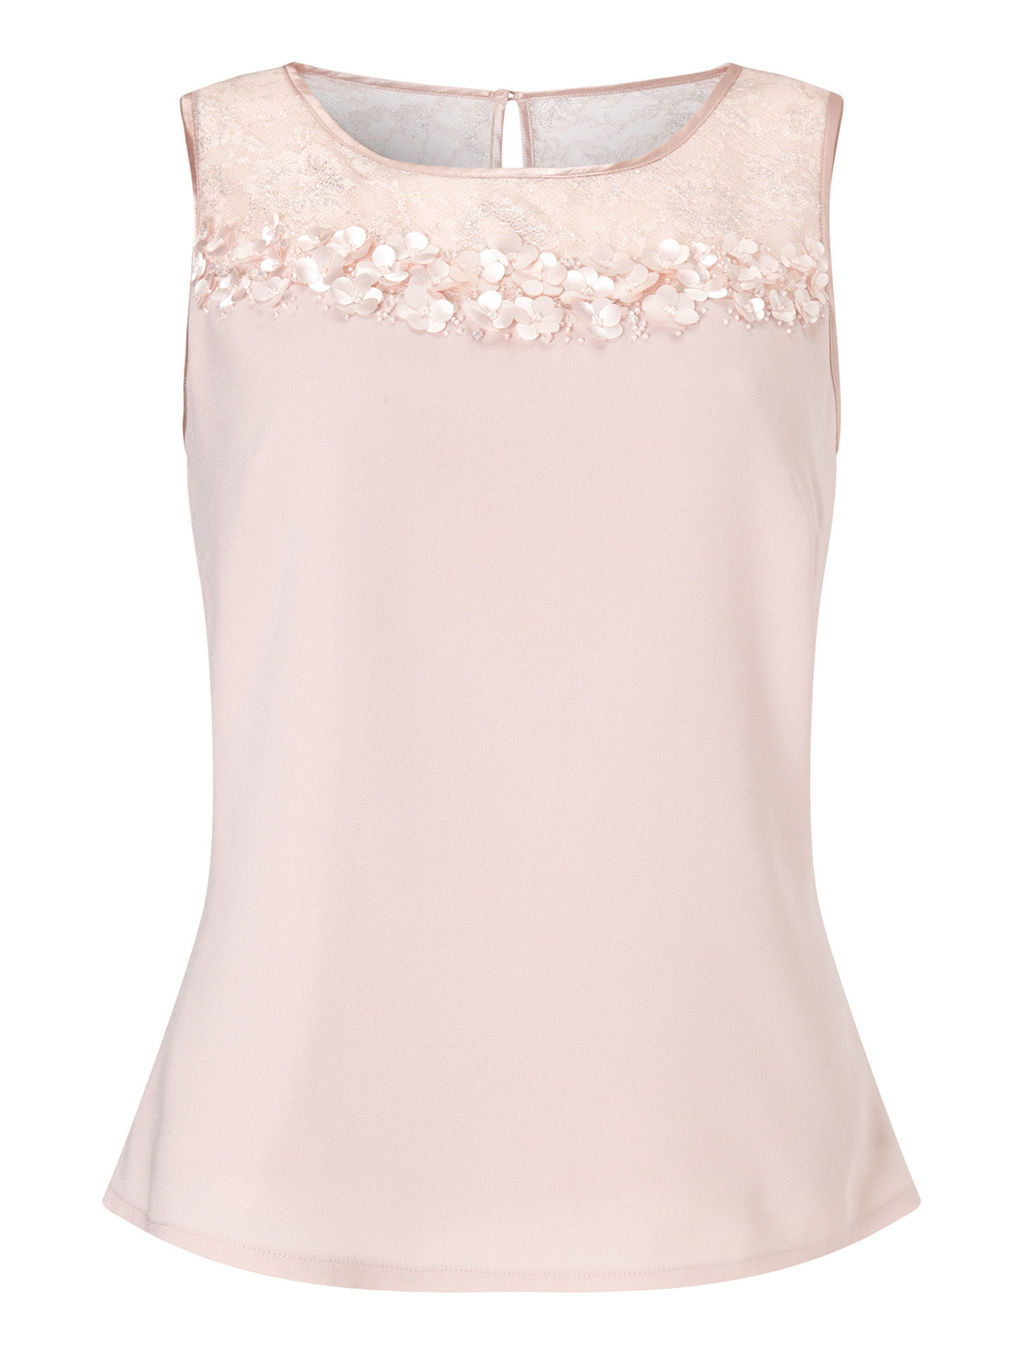 Lace Petal Blouse, Blossom Pink - neckline: round neck; pattern: plain; sleeve style: sleeveless; bust detail: sheer at bust; predominant colour: blush; occasions: casual; length: standard; style: top; fibres: polyester/polyamide - 100%; fit: body skimming; sleeve length: sleeveless; texture group: crepes; pattern type: fabric; embellishment: applique; season: s/s 2016; wardrobe: highlight